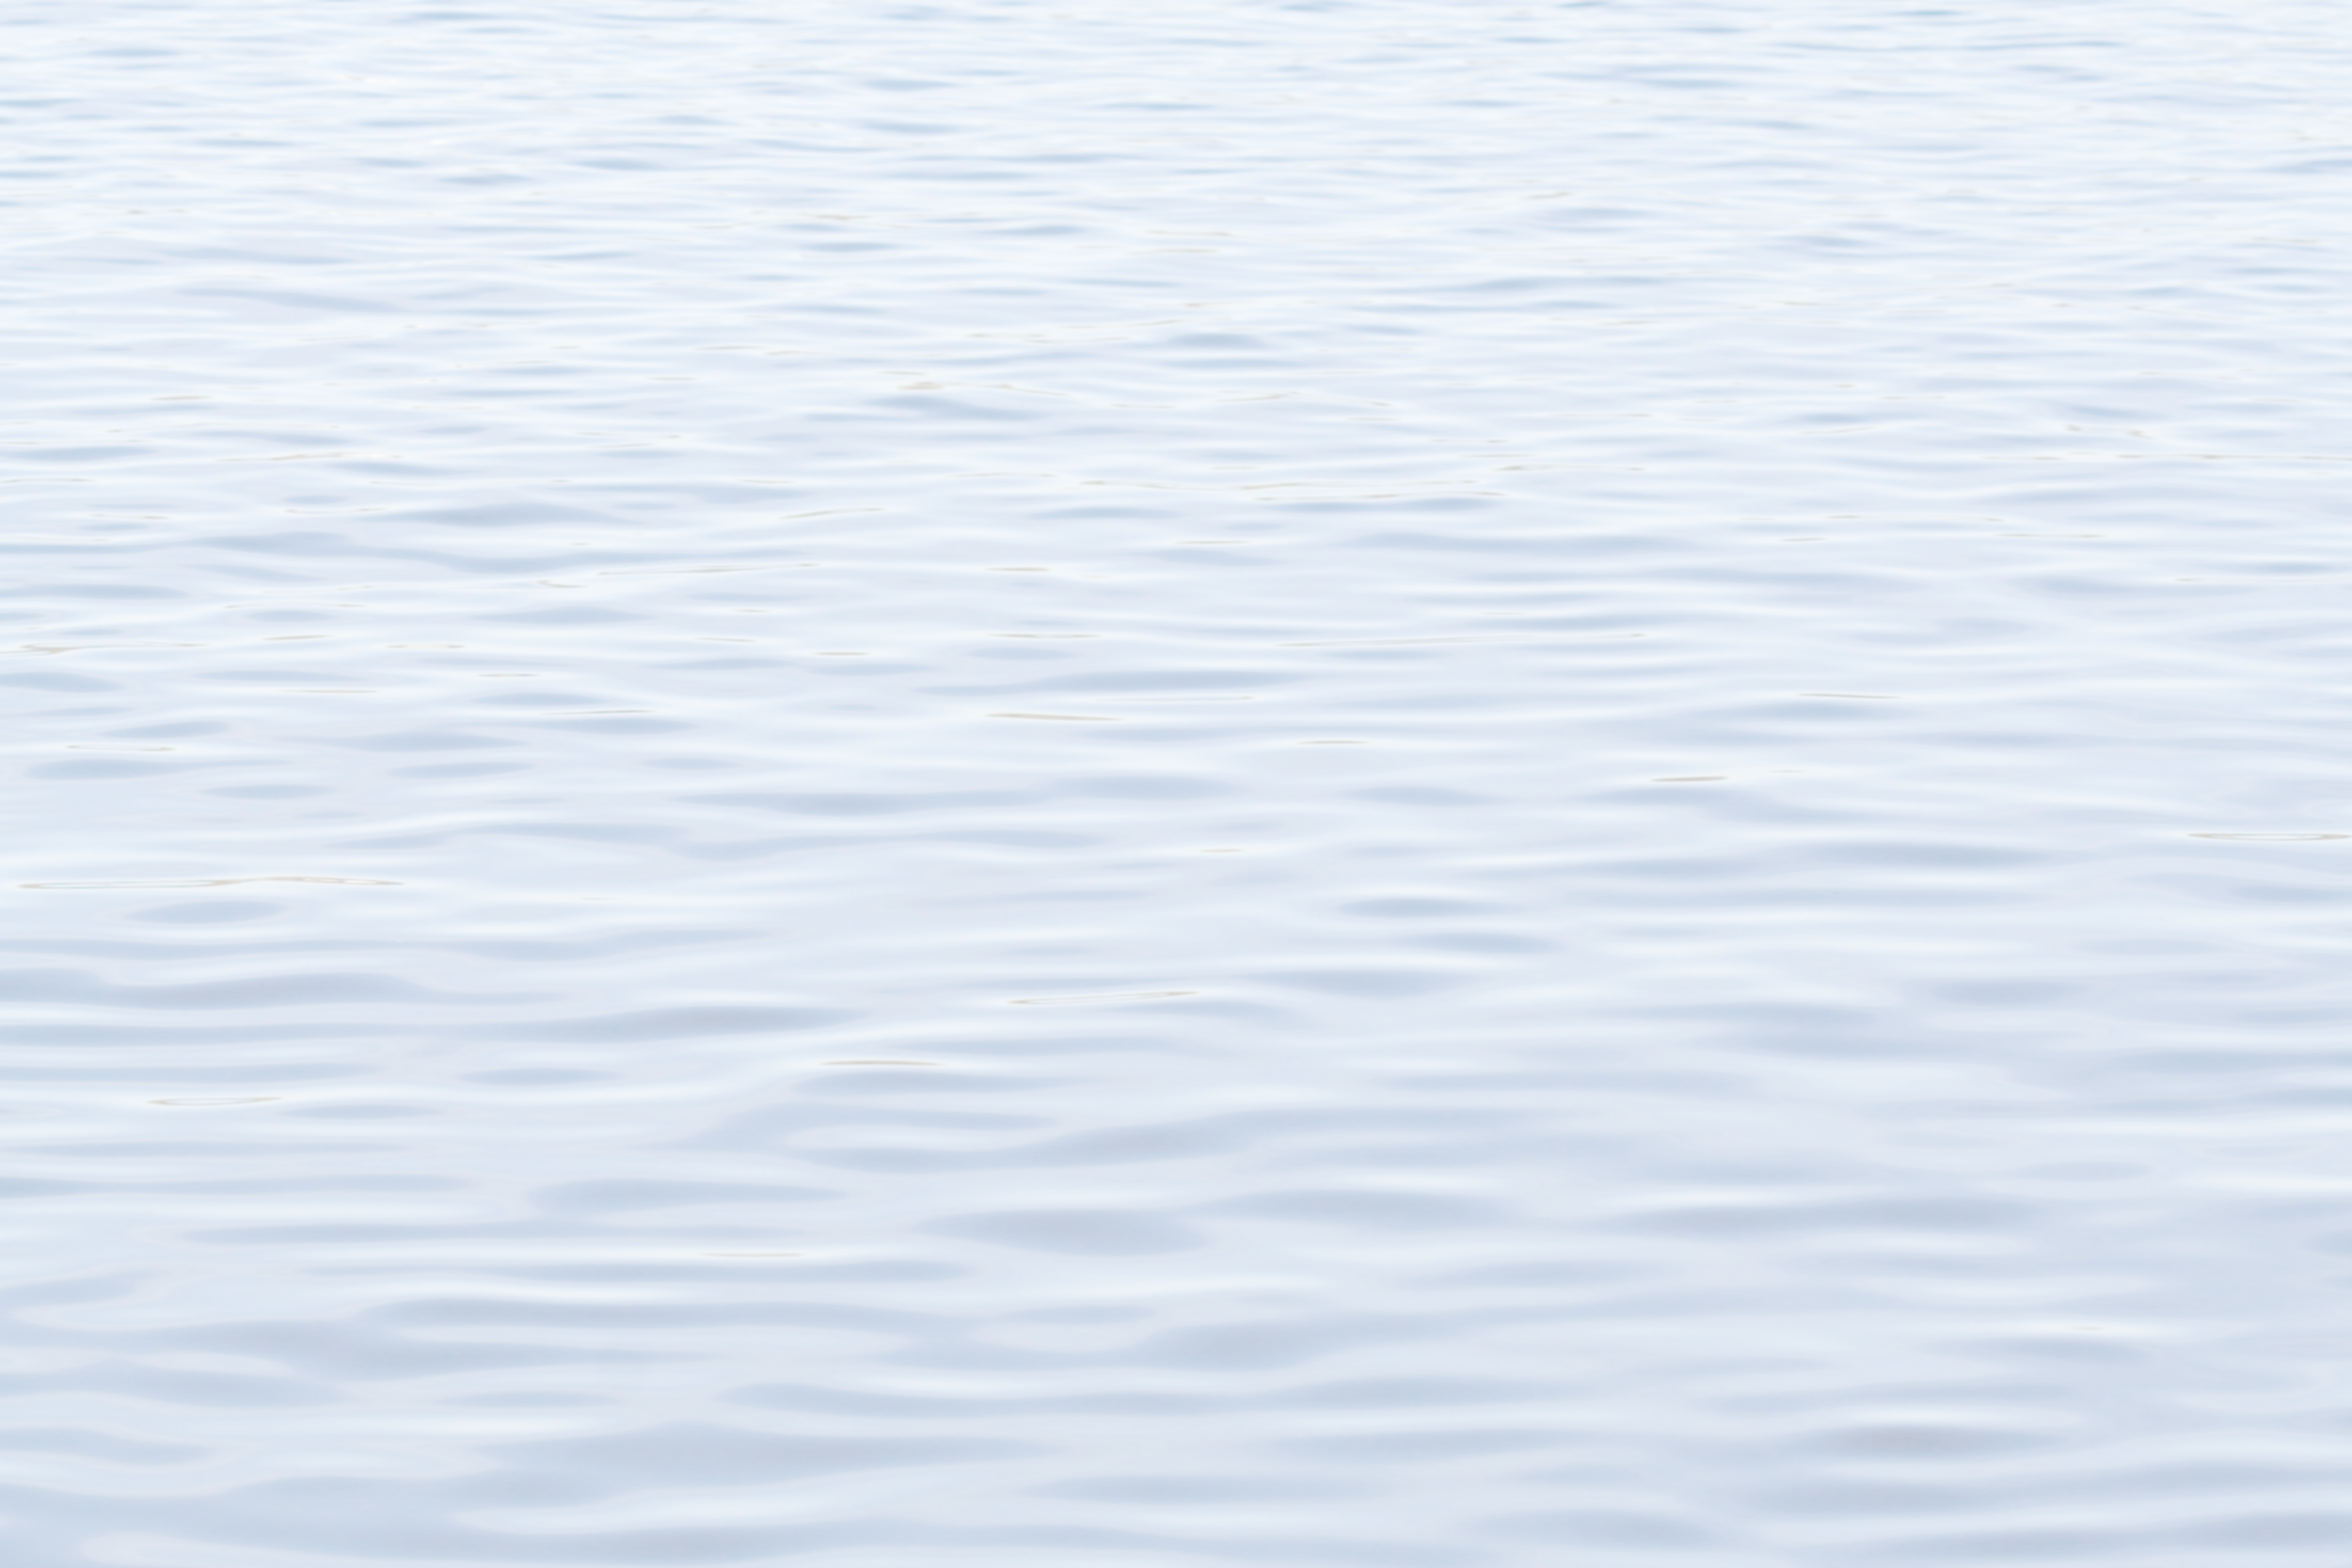 WaterBackground-dr.png